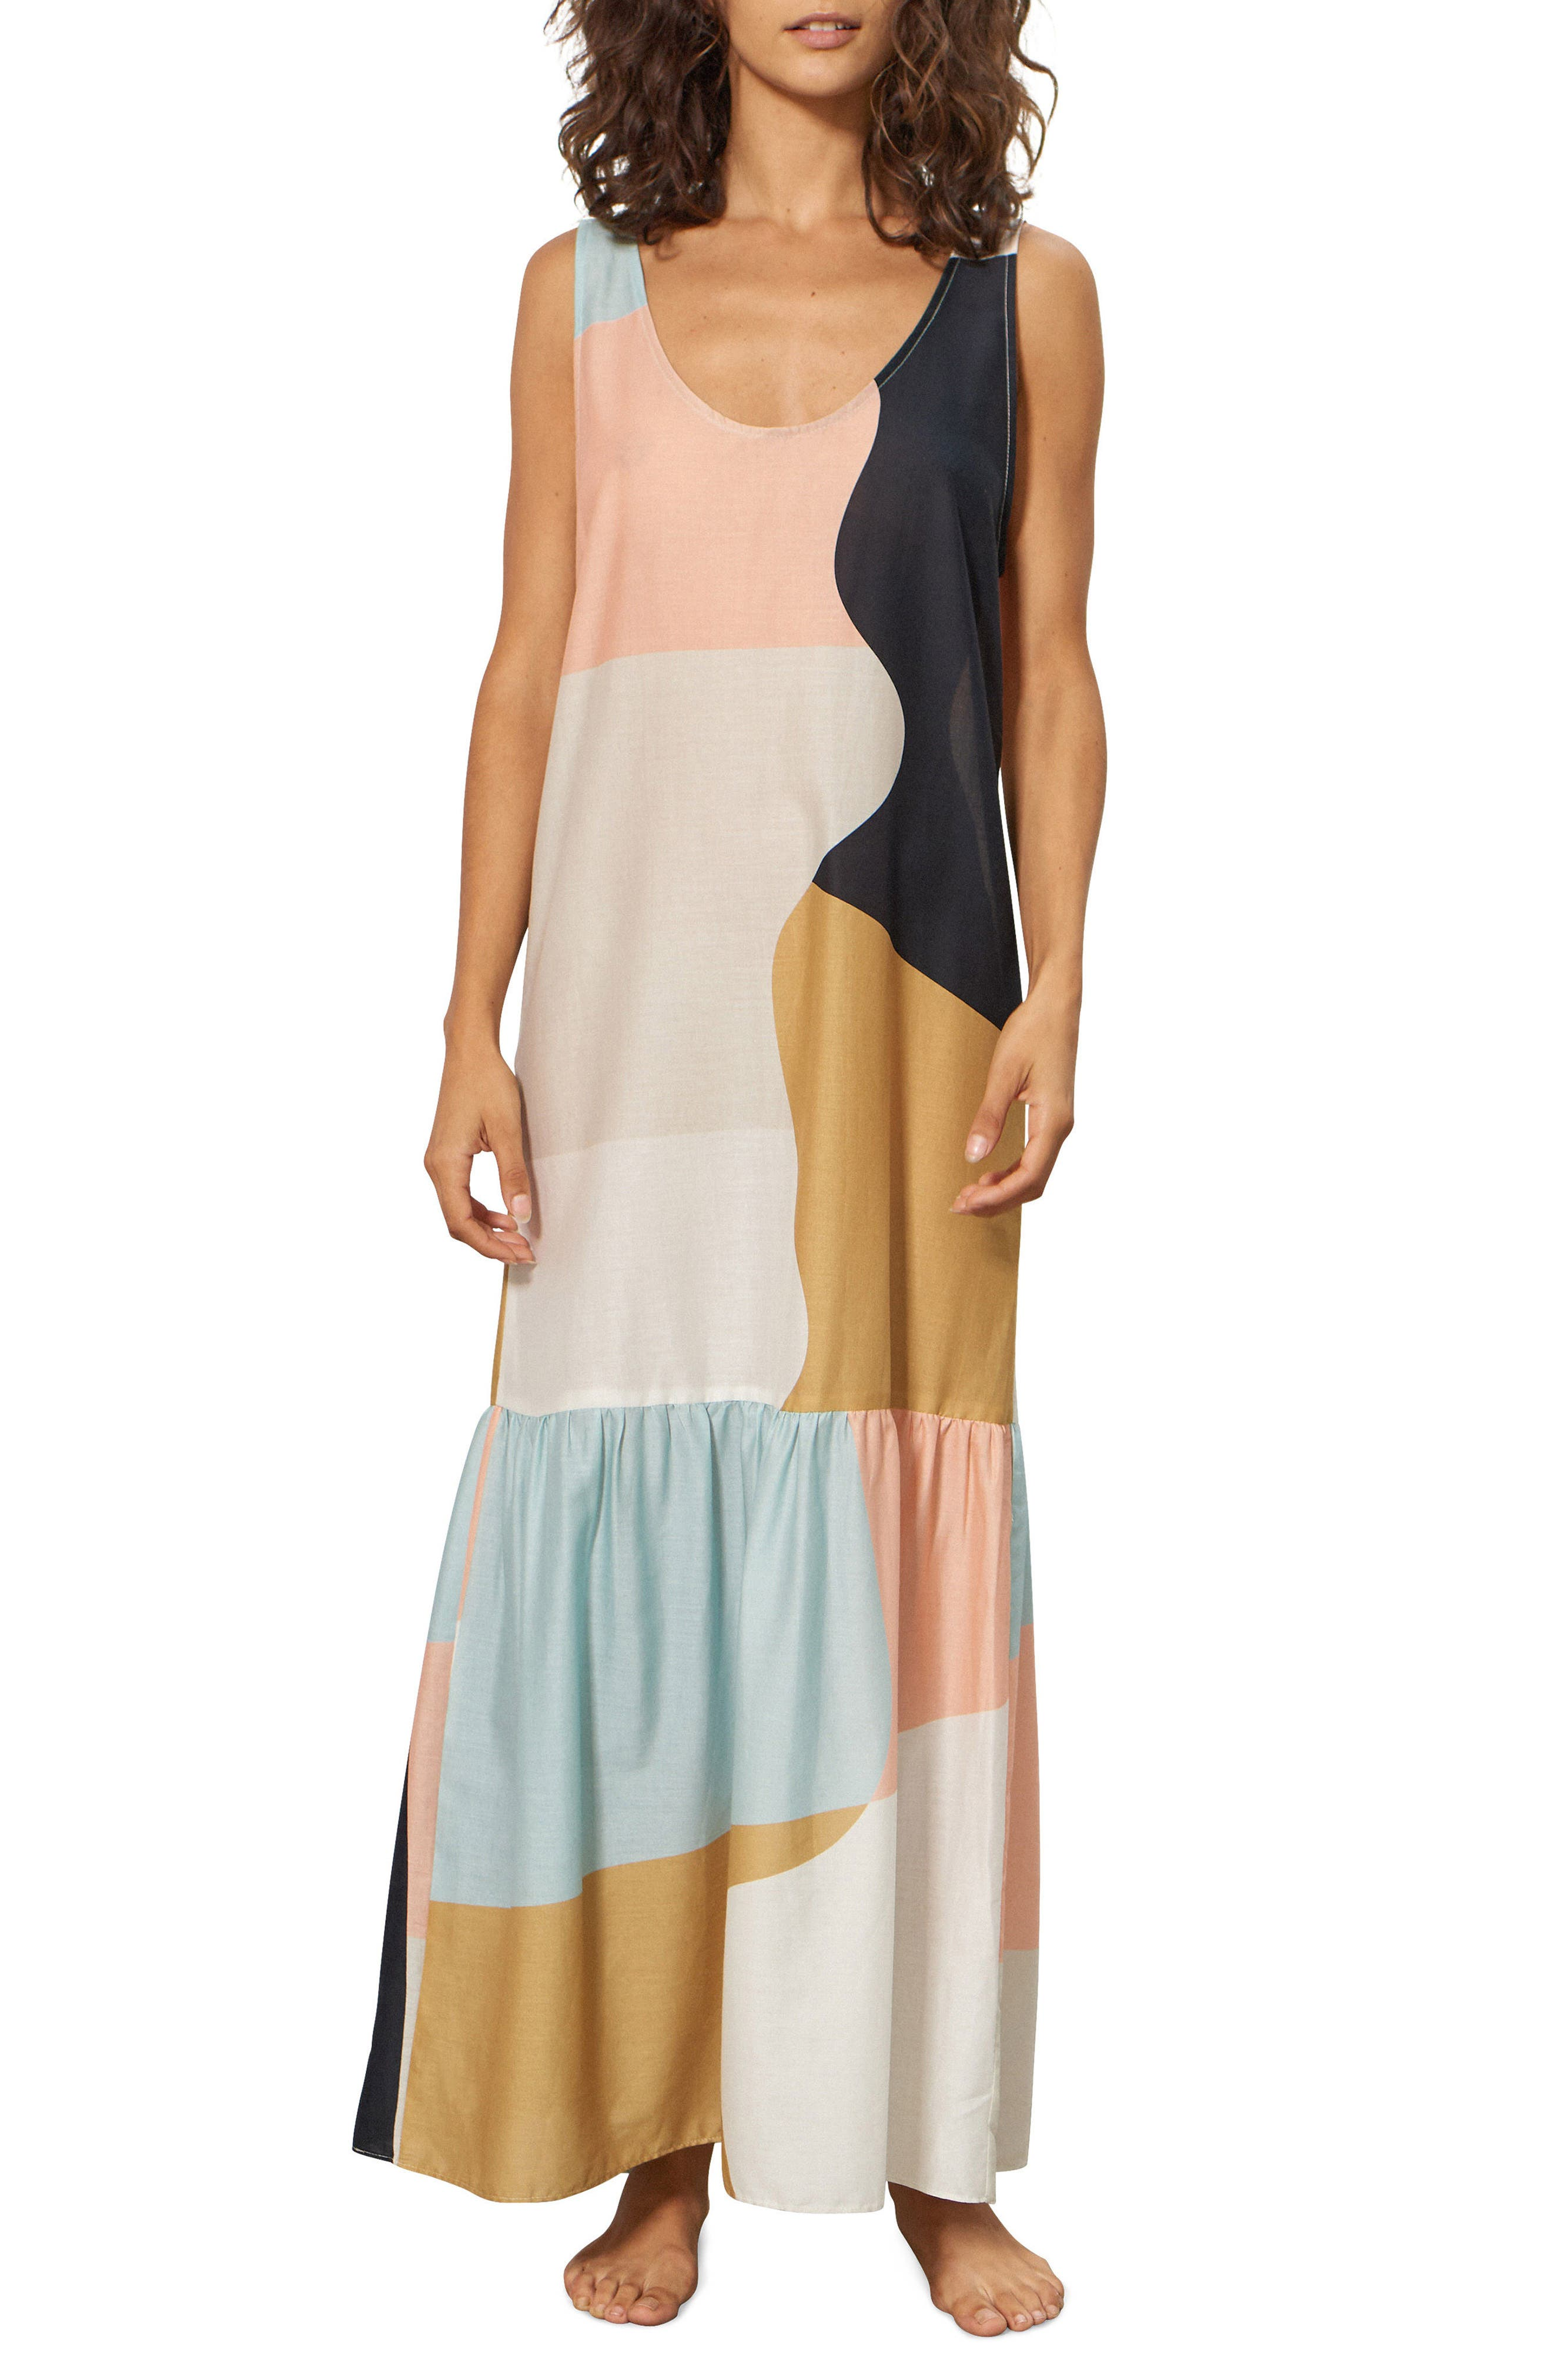 Valentina Cover-Up Dress,                             Main thumbnail 1, color,                             PEACH MULTI